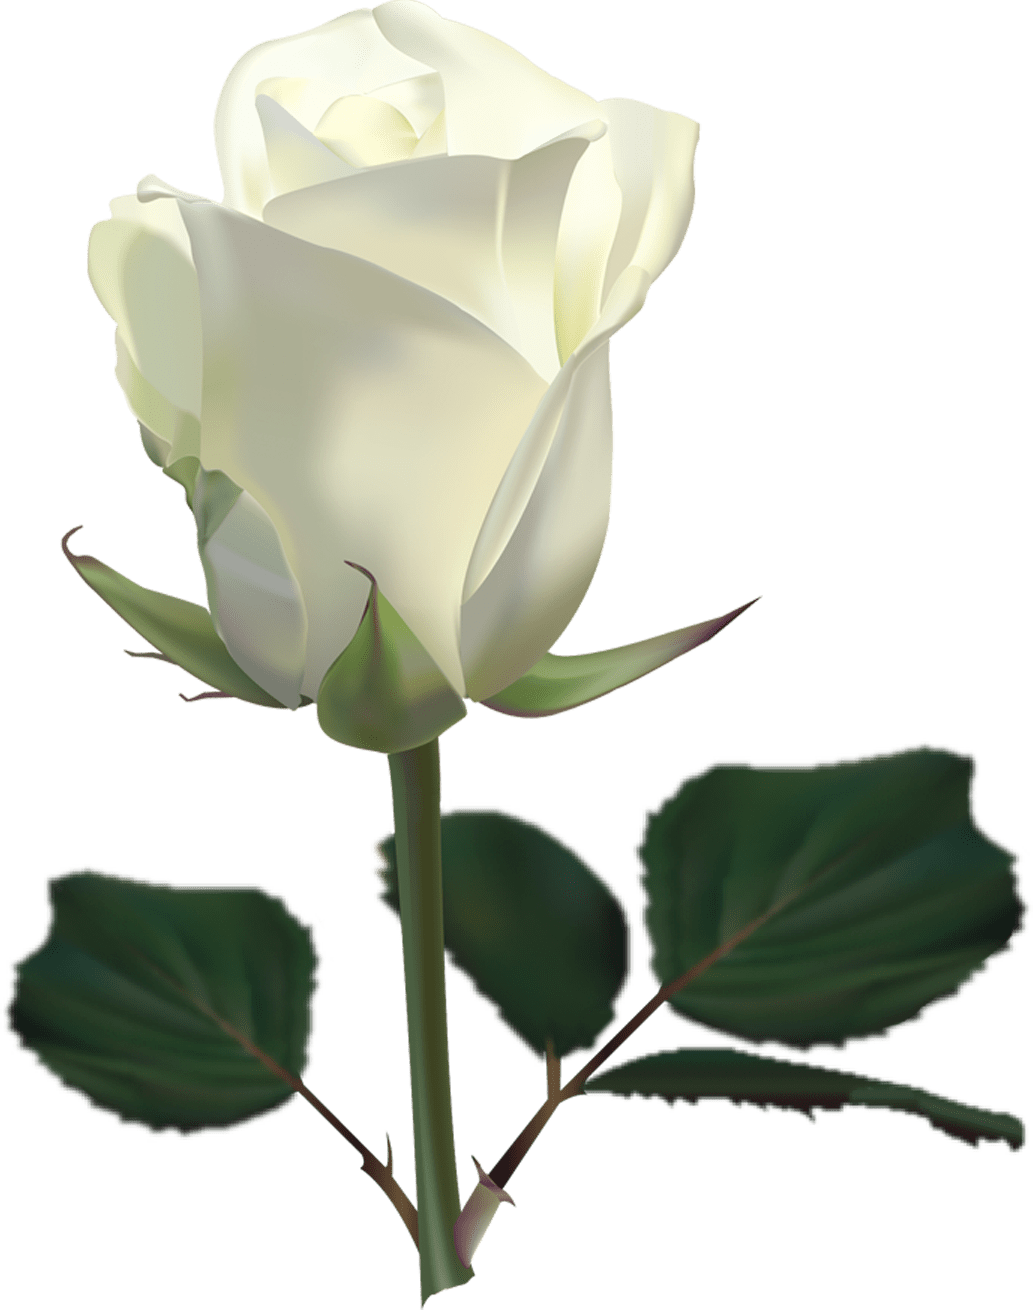 White roses PNG images, free download flower pixtures. And